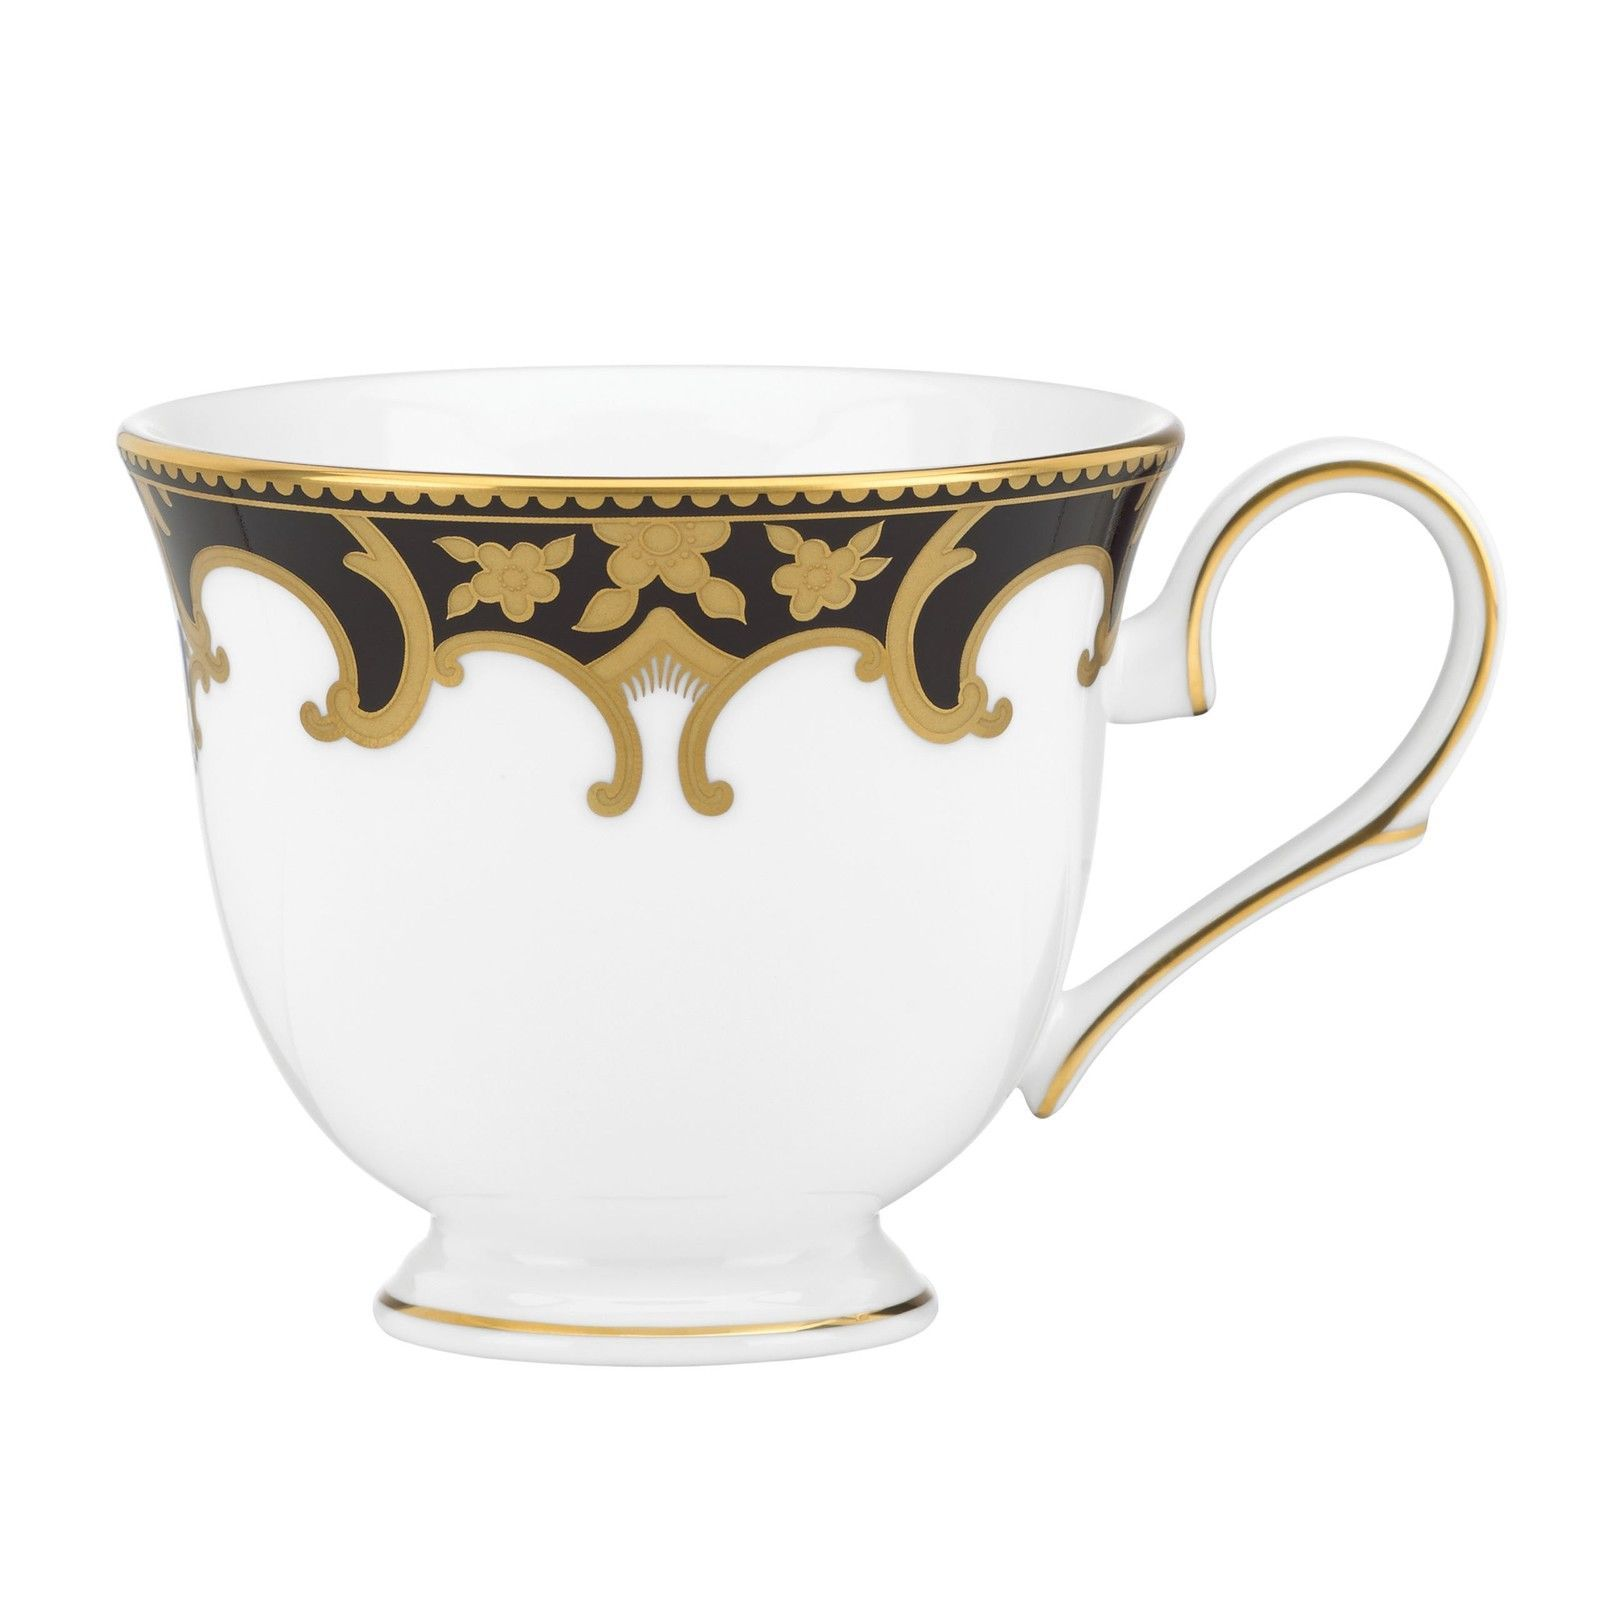 Lenox Marchesa Couture Night Cup, Baroque